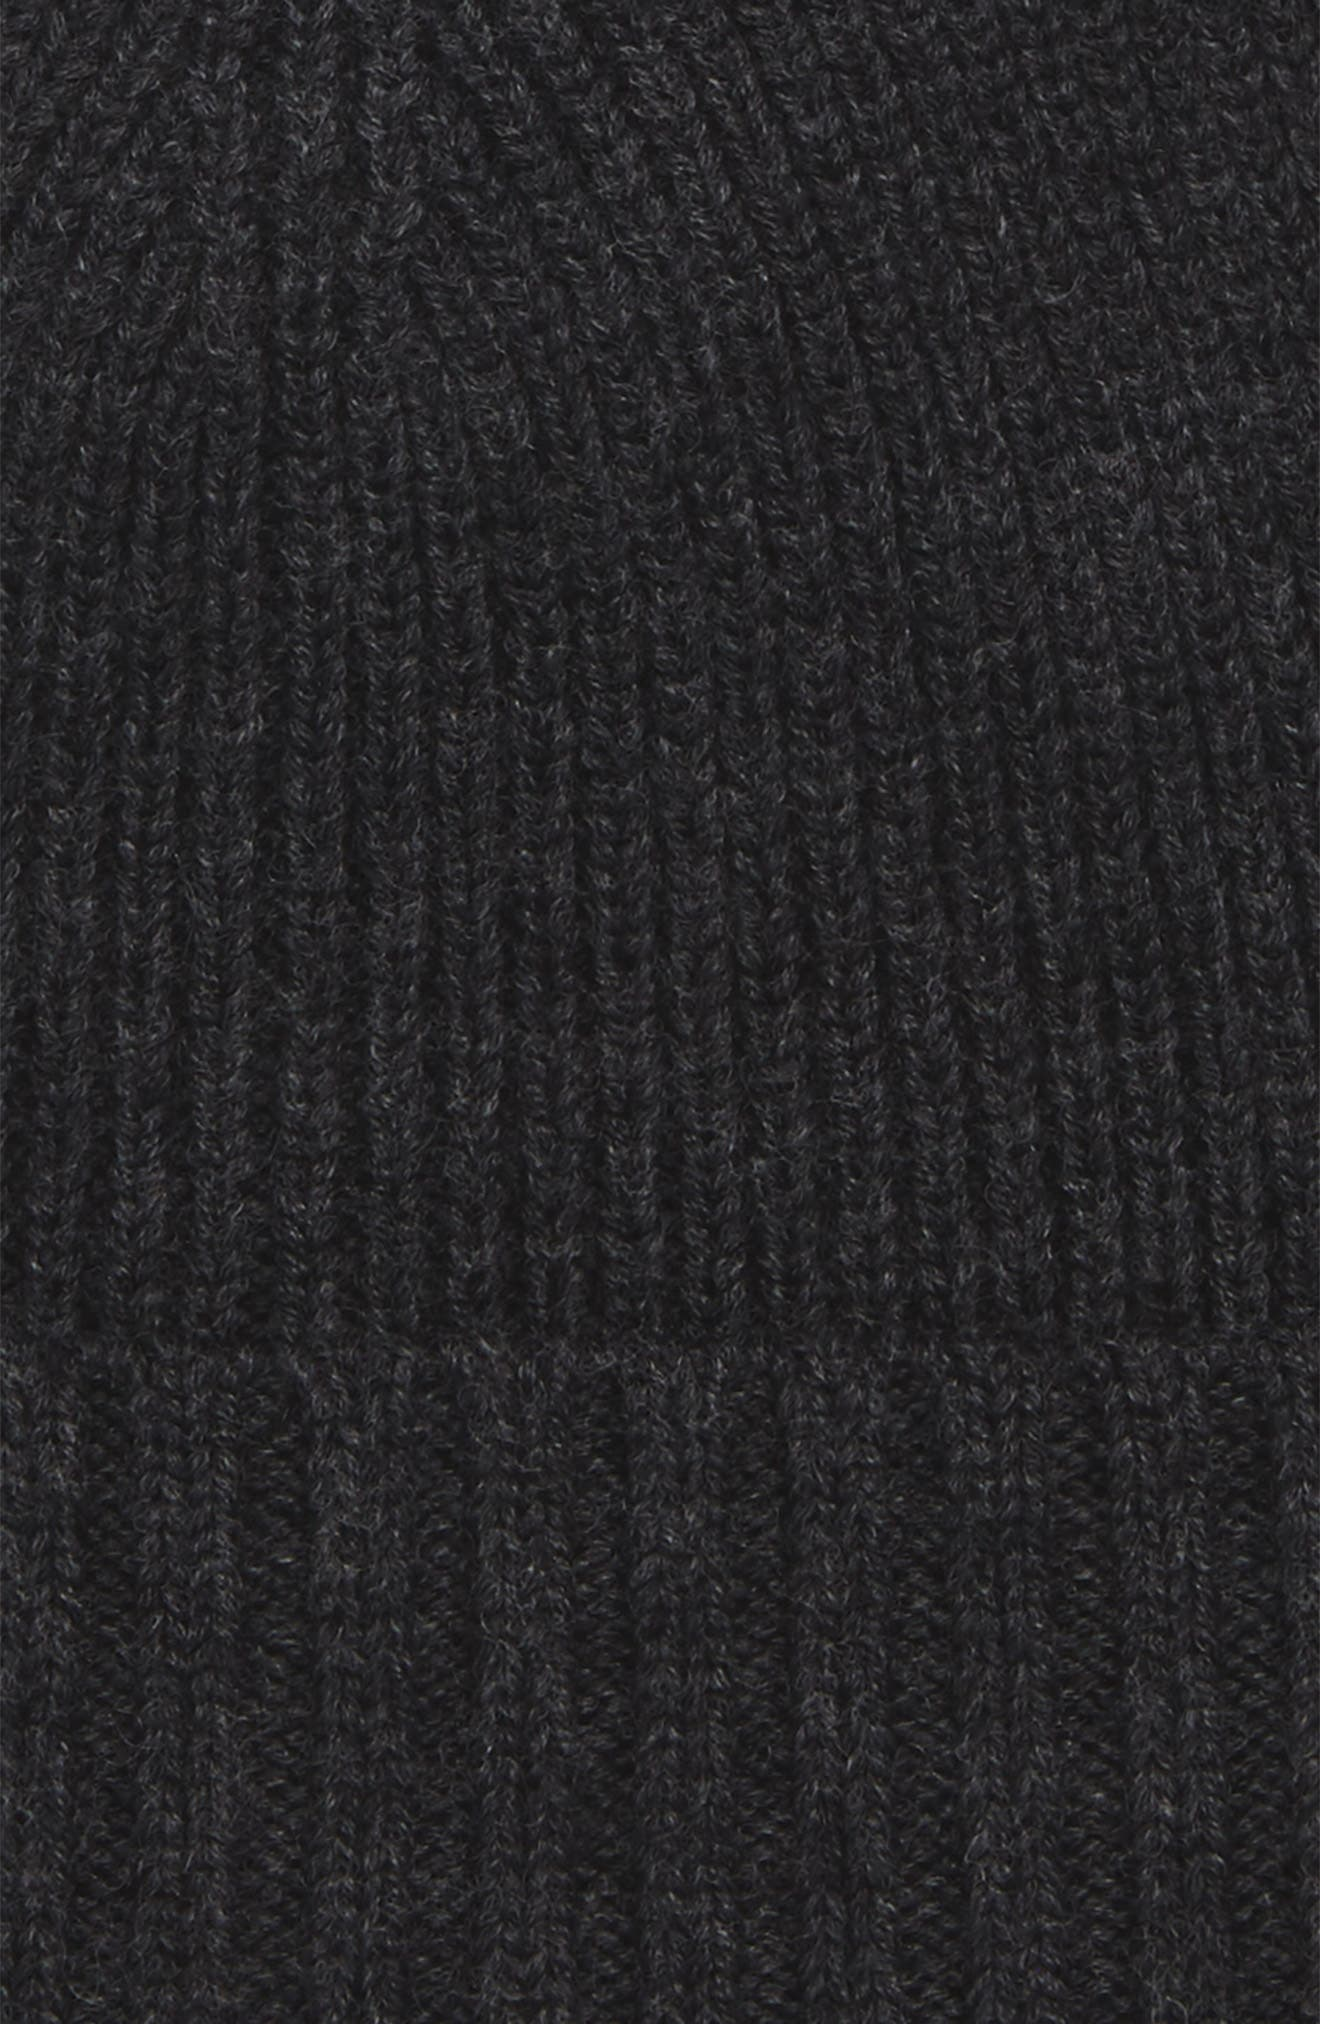 C-Fati Beanie,                             Alternate thumbnail 6, color,